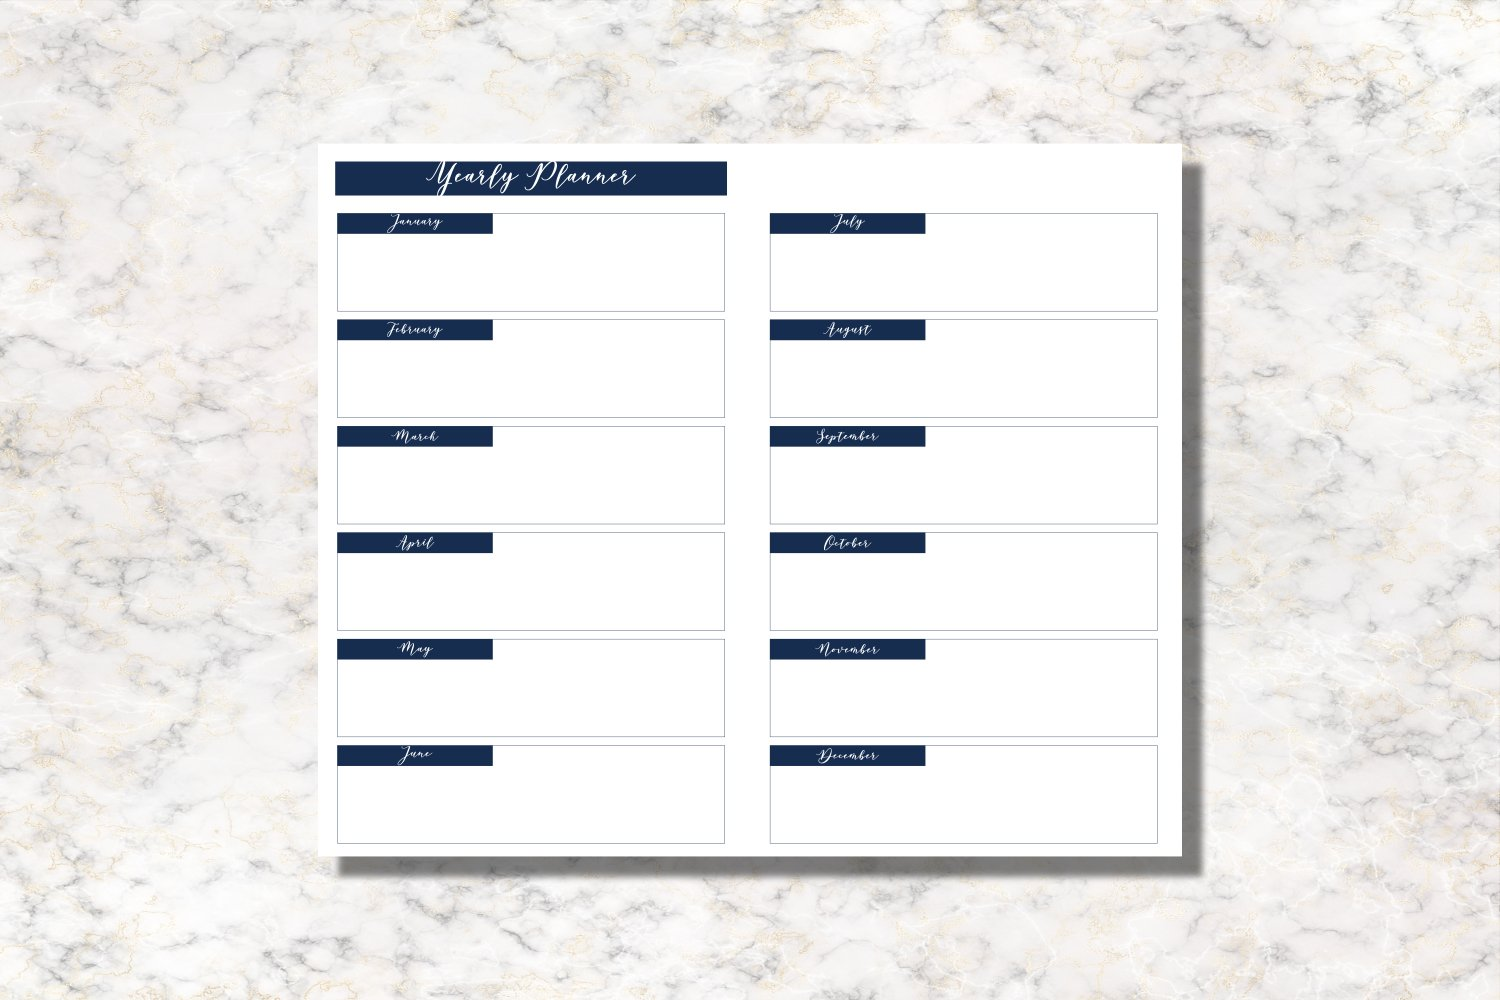 Starfish Cahier Size Notebook Inserts Planner example image 4